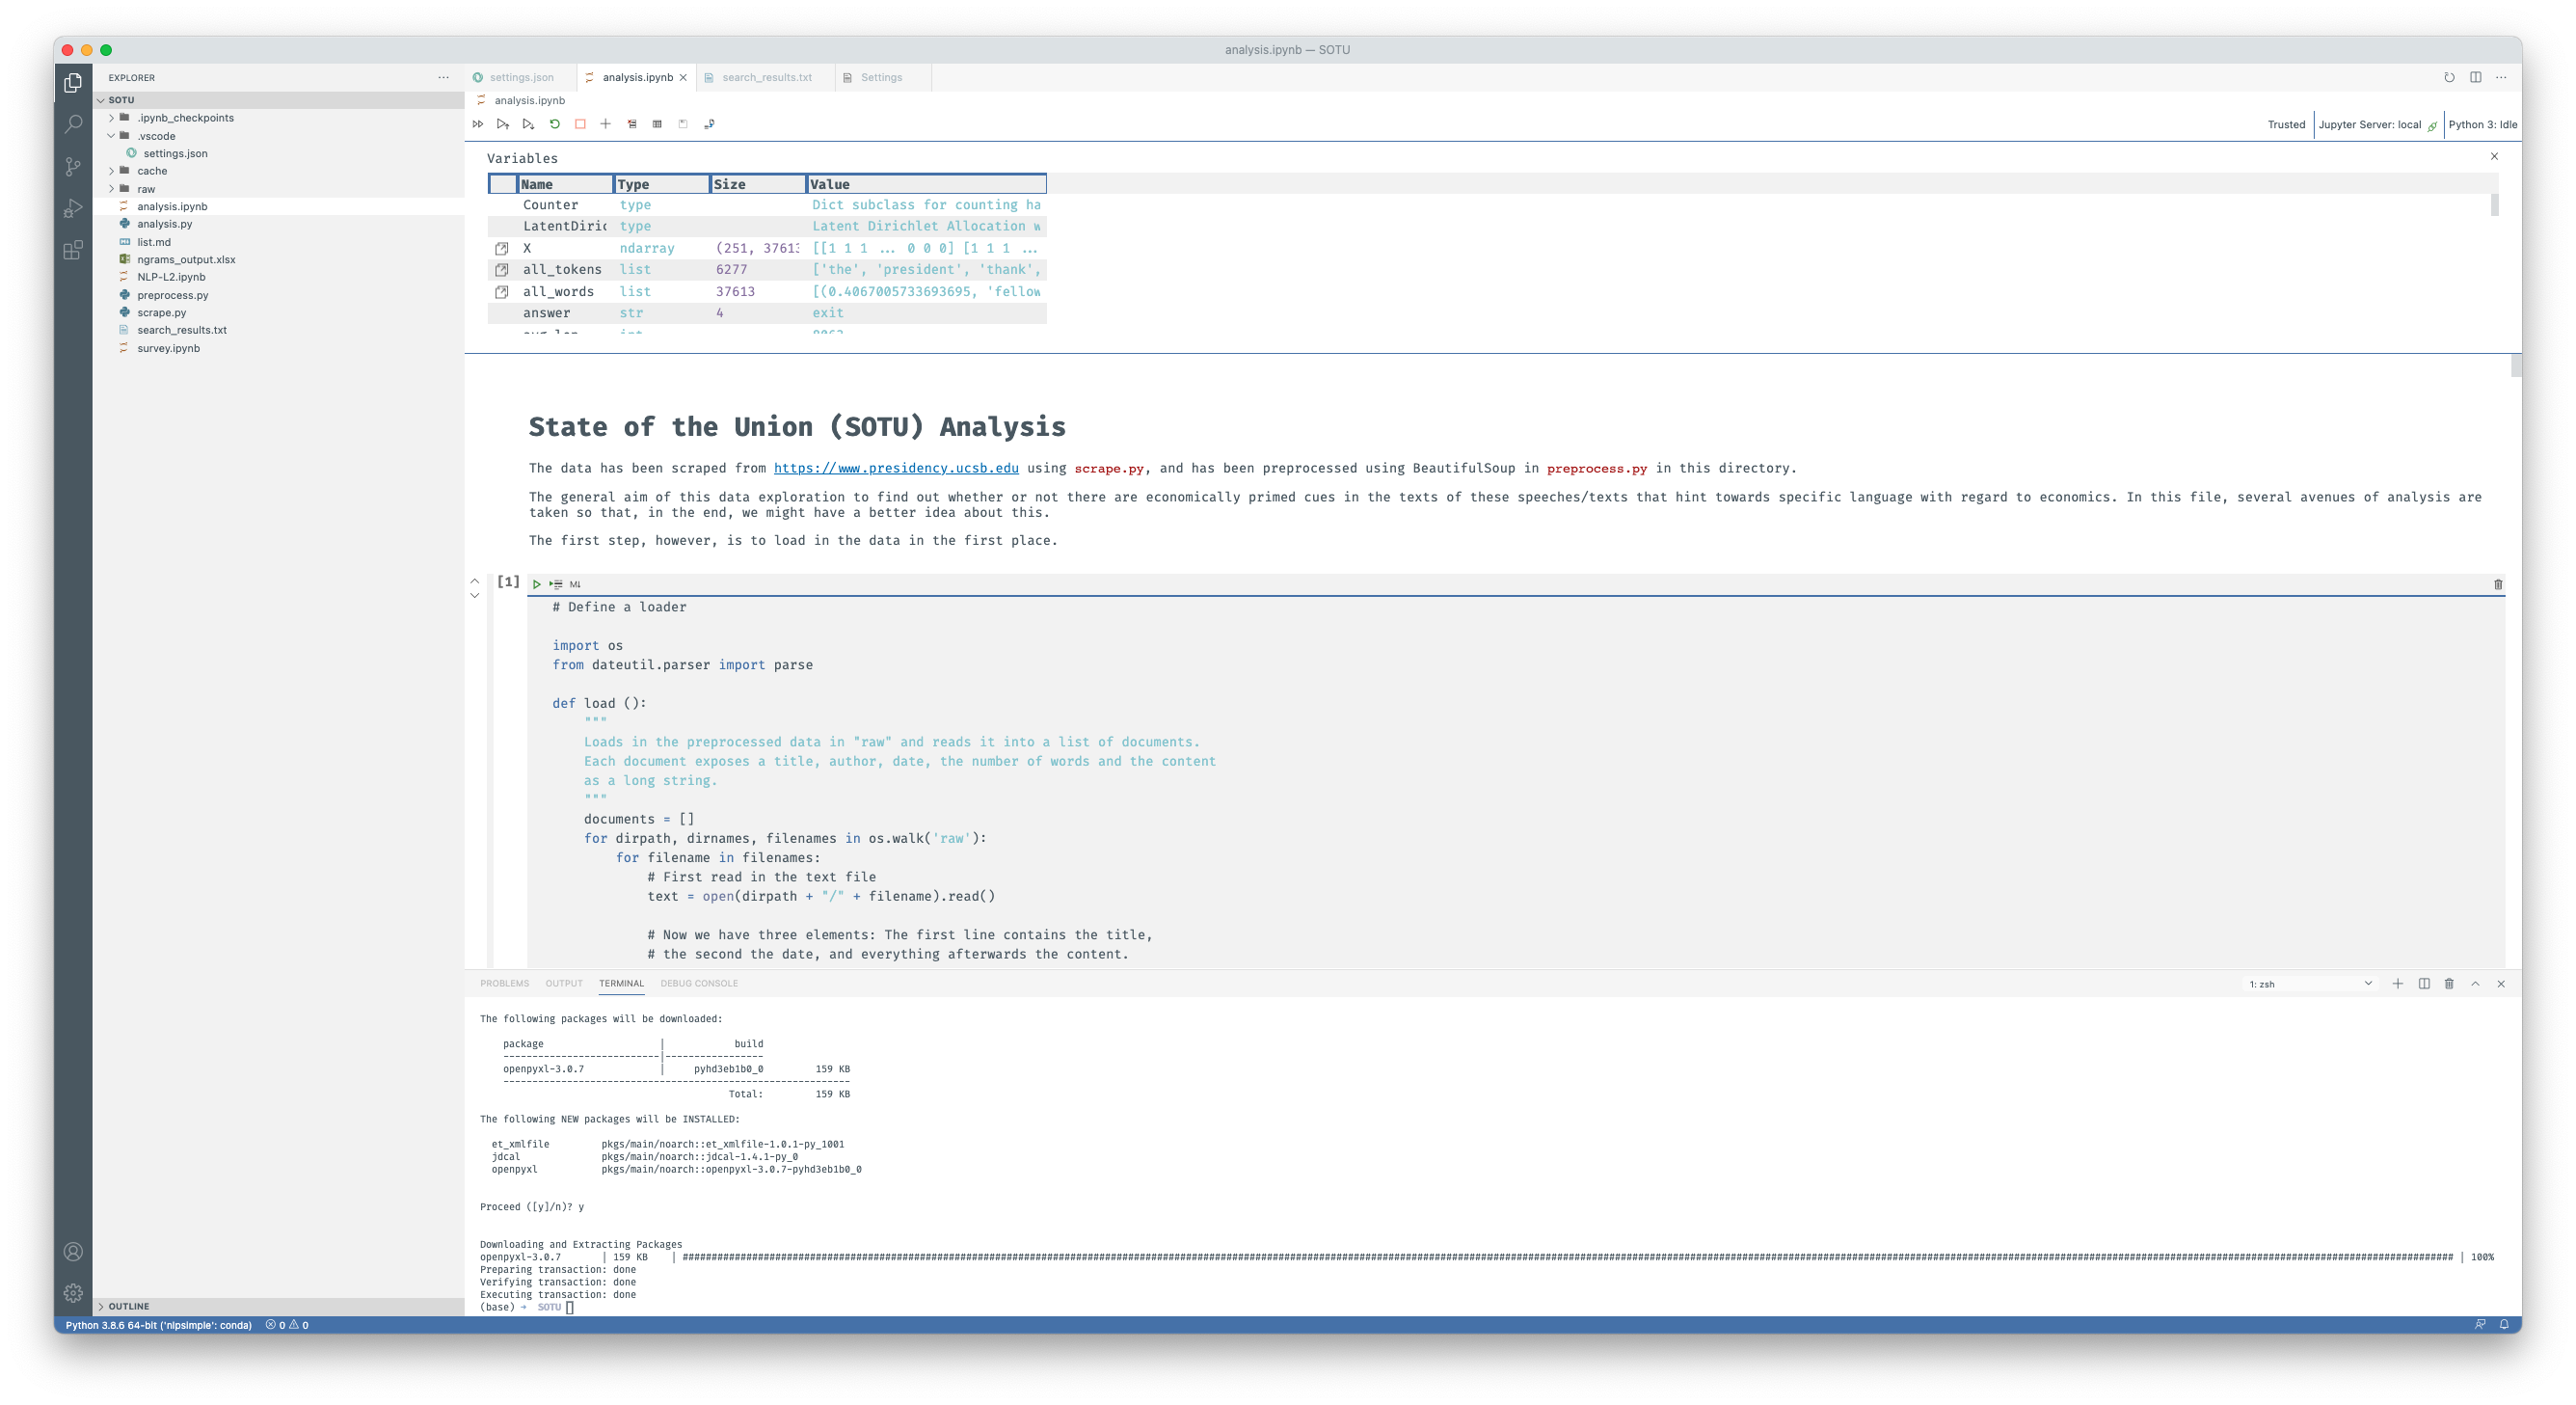 VS Code open with an analysis inside a Jupyter notebook I am currently running on the U.S. States of the Union (SOTU)